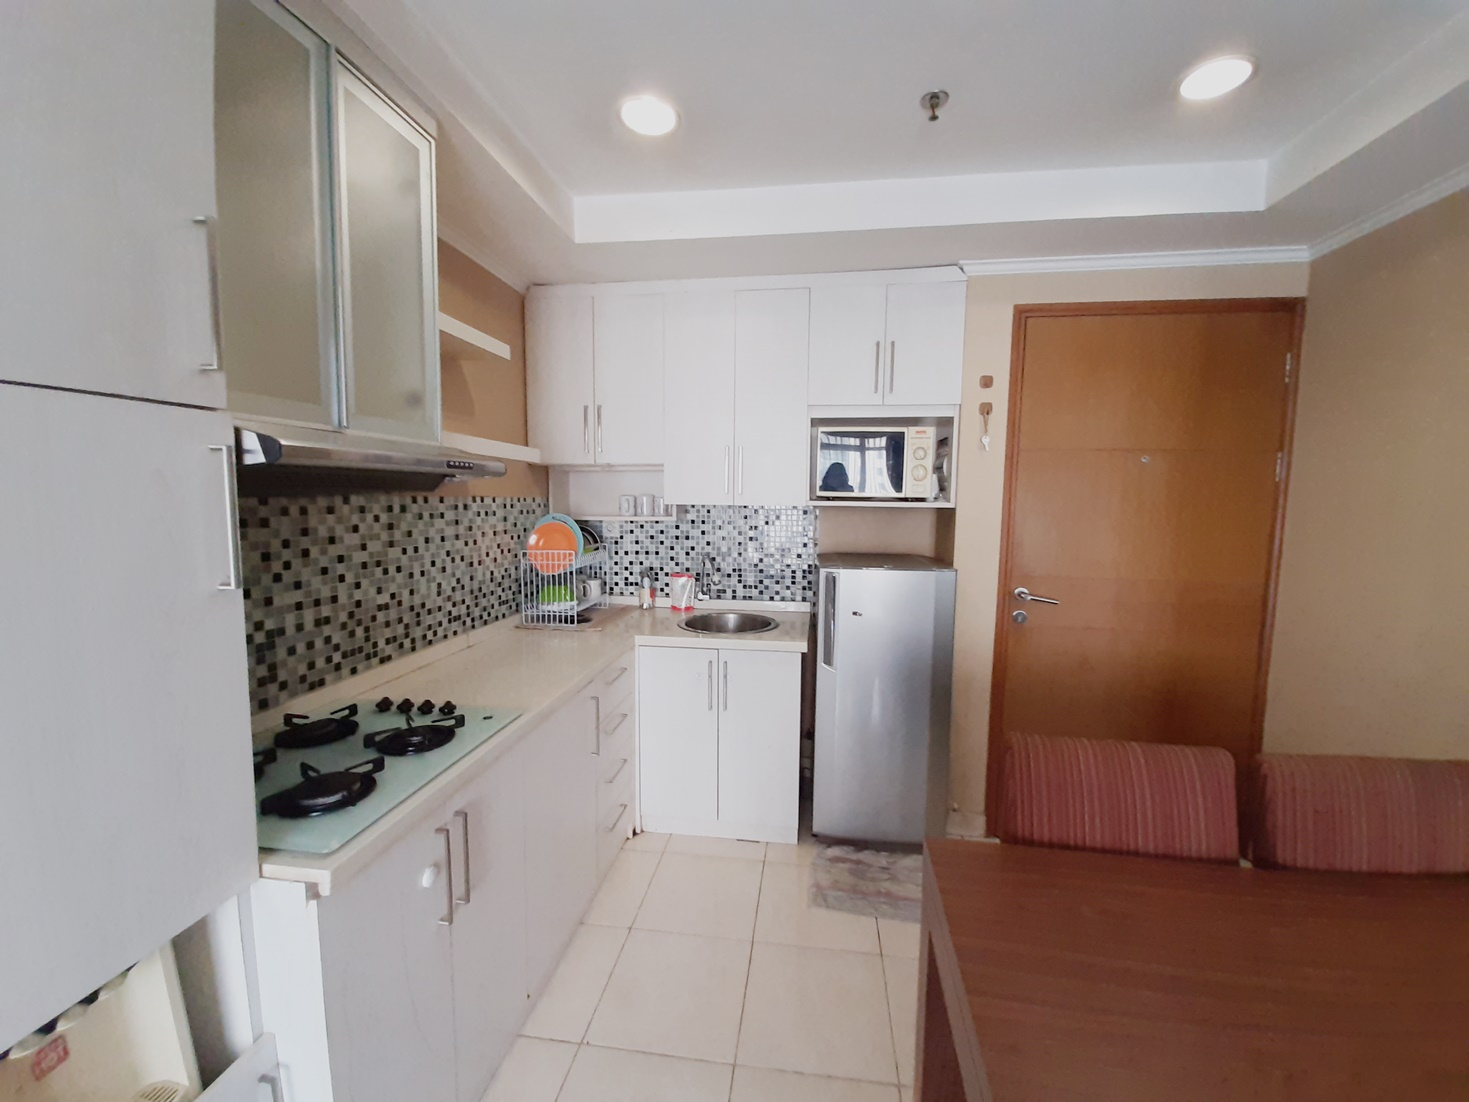 Patria Park Apartemen 2 Bedroom Fully Furnished Good Furniture and View